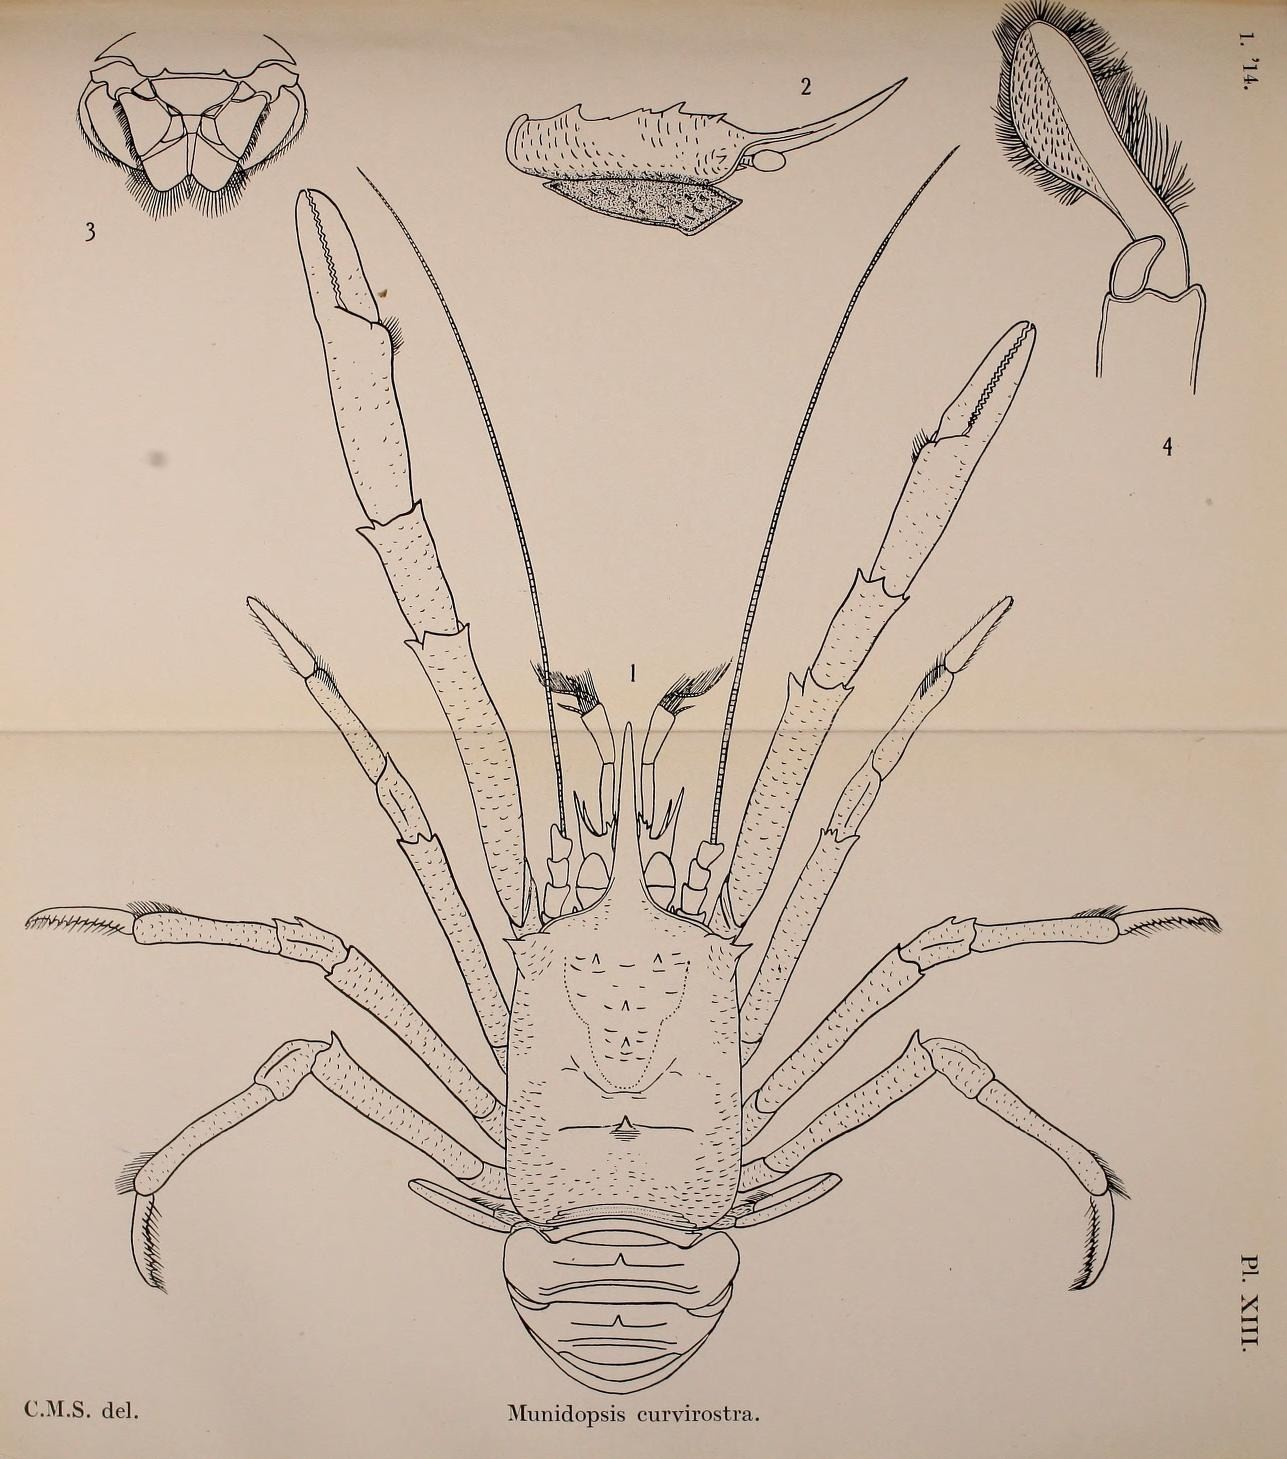 Image of bent-nosed squat lobster